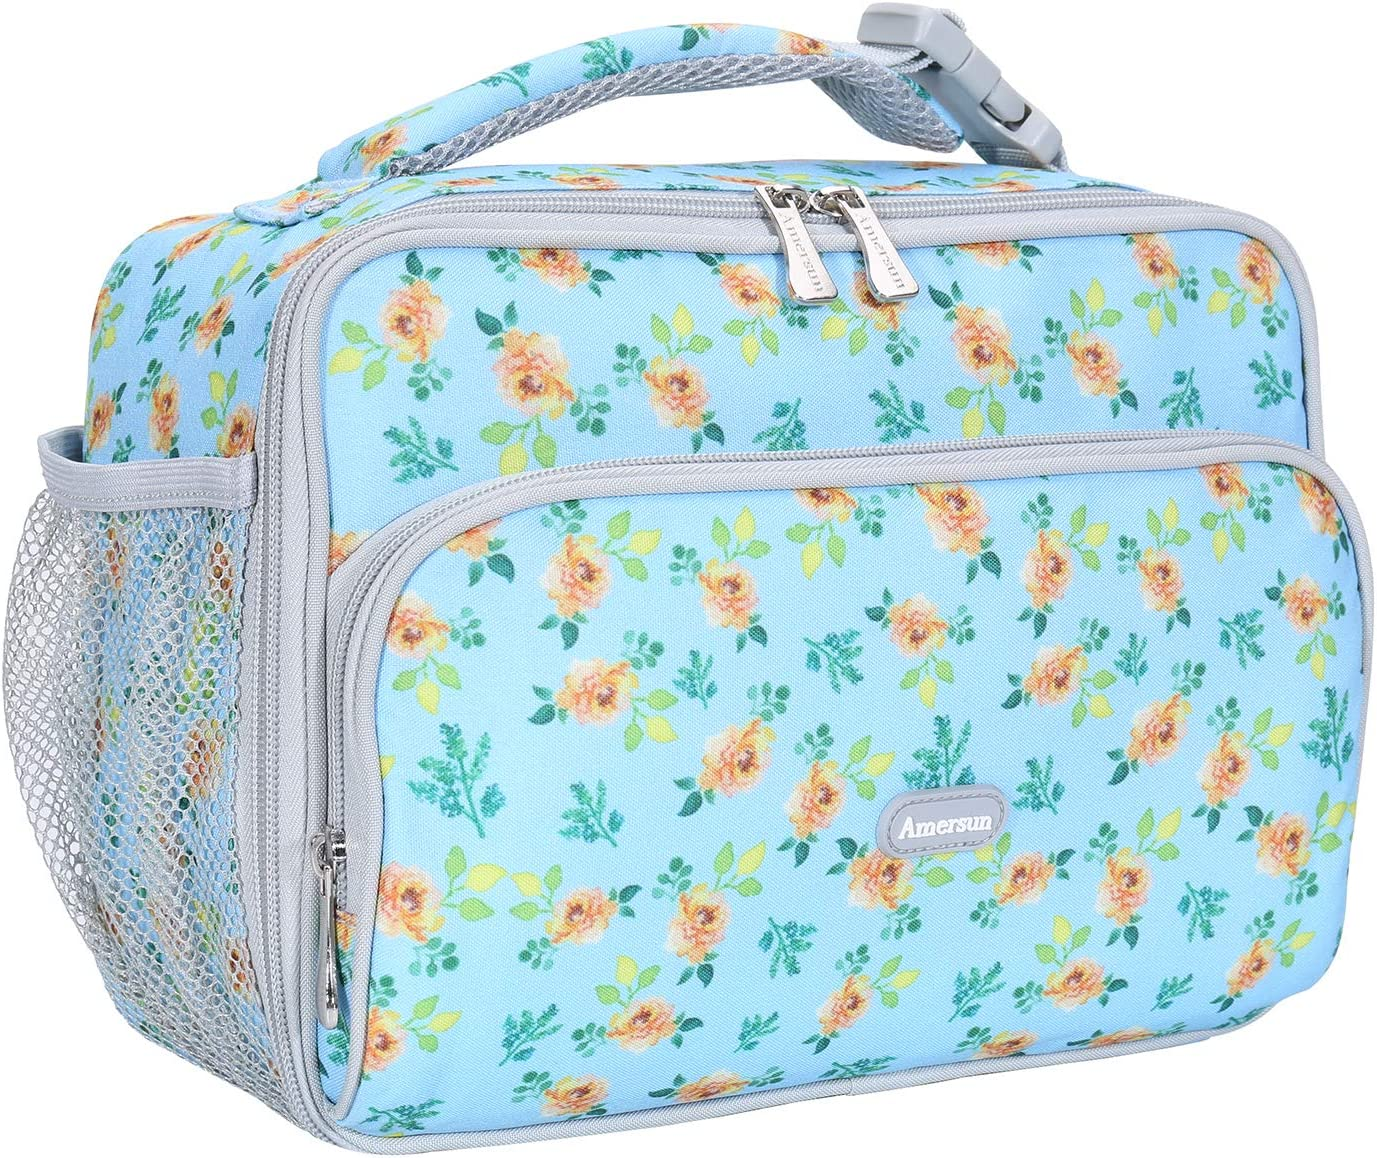 Amersun Kids Lunch Box,Durable Insulated School Lunch Bag with Padded Liner Keeps Food Hot Cold for Long Time,Small Thermal Travel Lunch Cooler for Girls Boys-2 Pockets, Blue floral